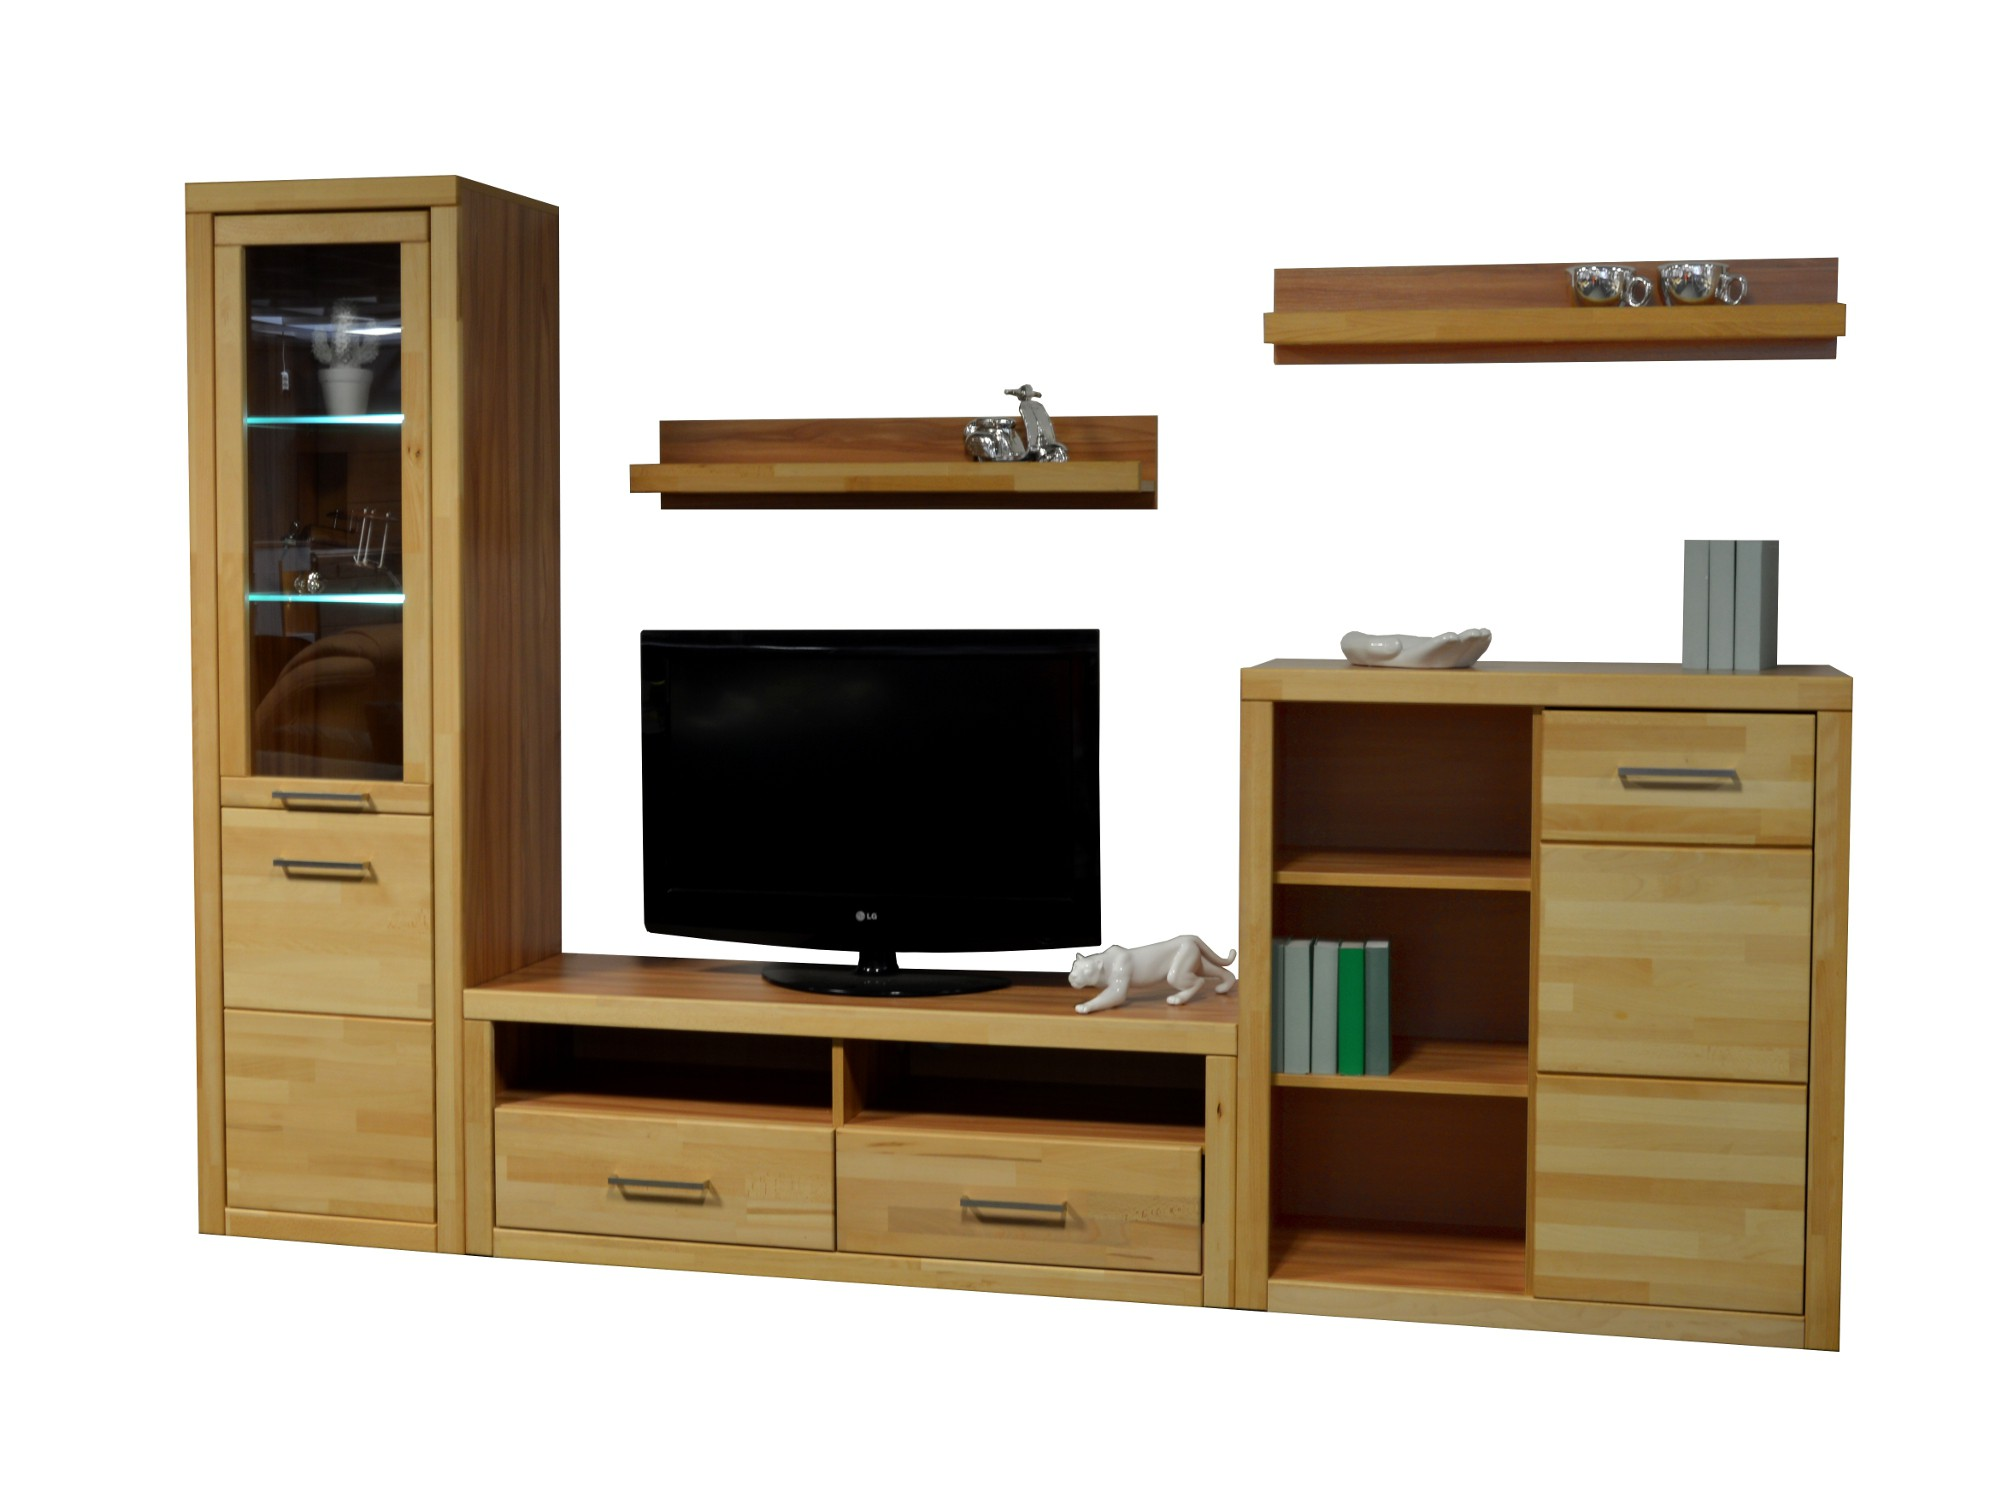 wohnwand lund 5 teilig 270 cm breit kernbuche wohnen wohnw nde. Black Bedroom Furniture Sets. Home Design Ideas